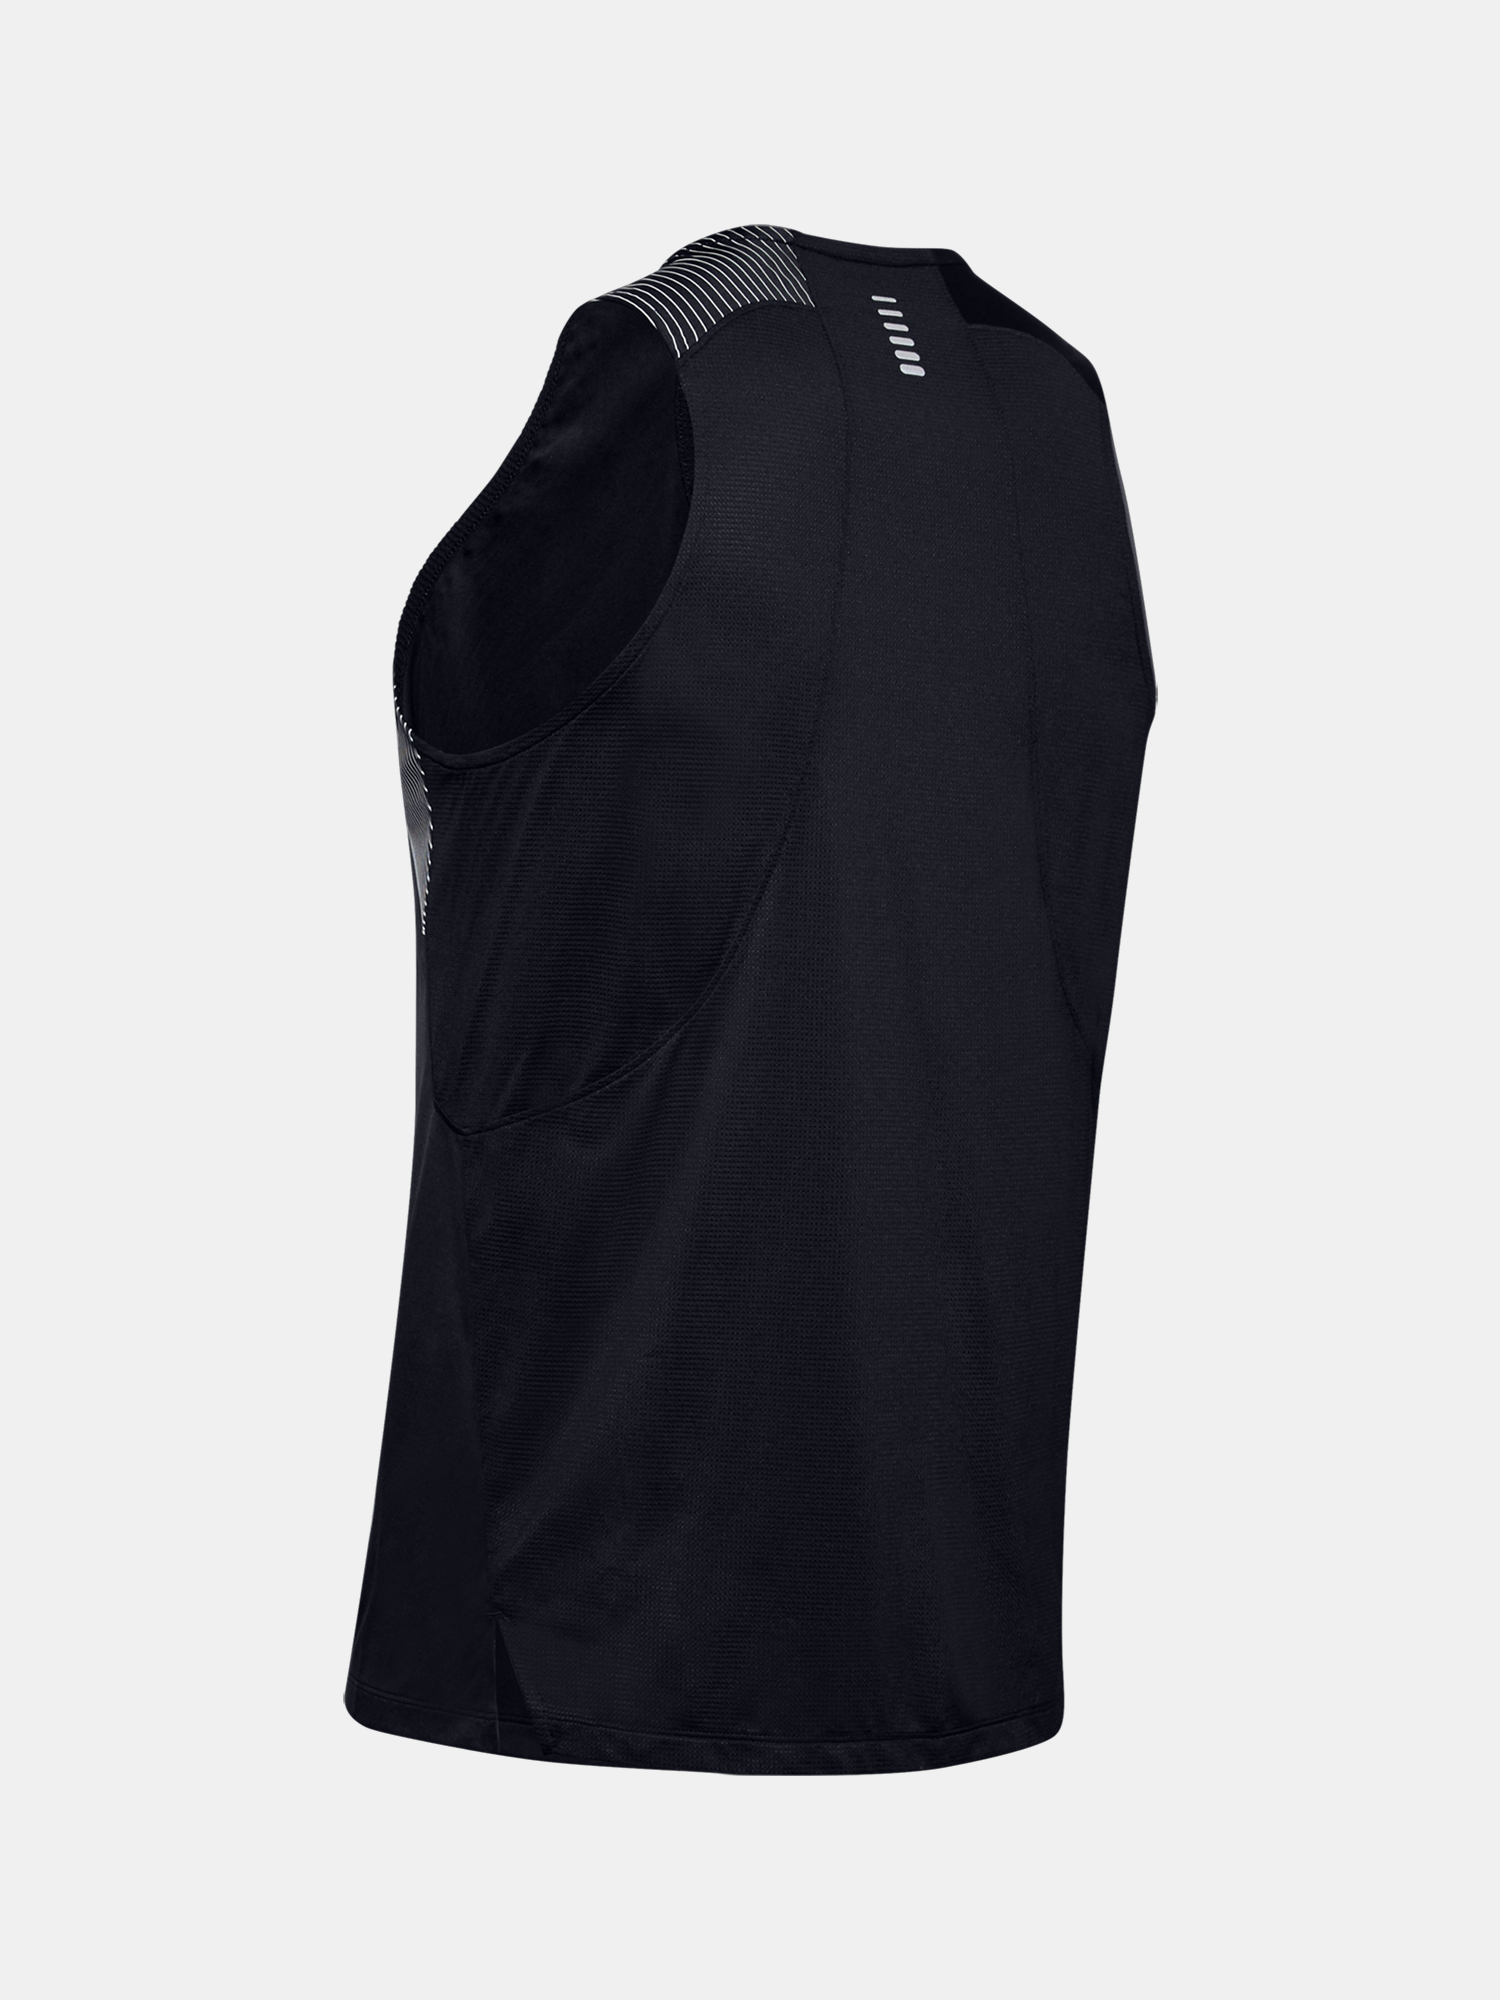 Tielko Under Armour M  Qlifier ISO-CHILL Singlet-BLK (4)